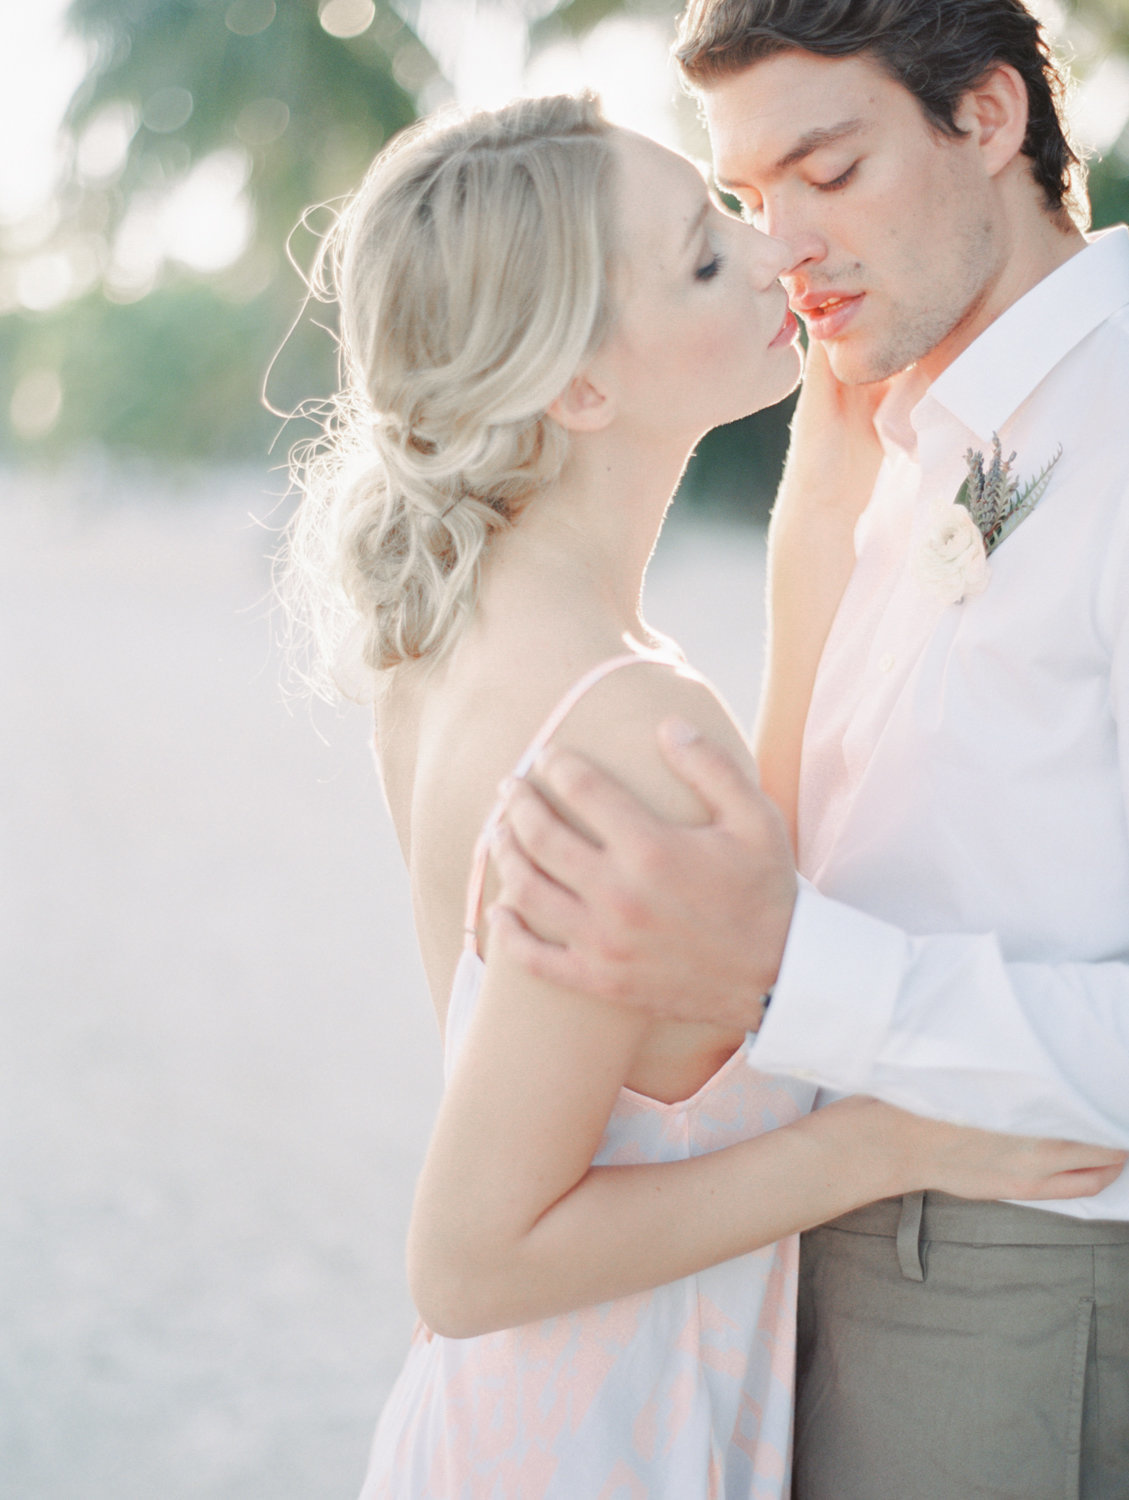 island-elopement-destination-wedding-photographer-melanie-gabrielle-photography-0111